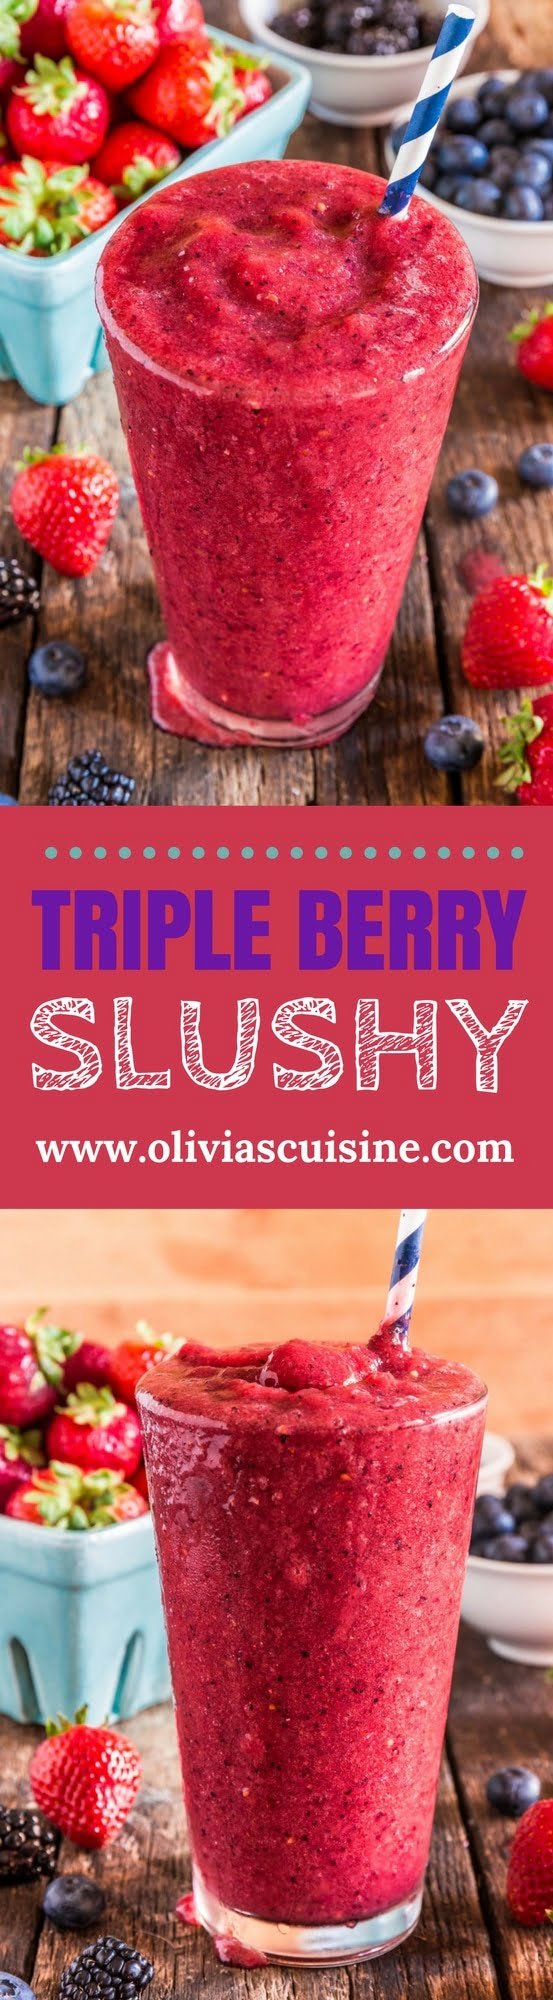 Triple Berry Slushy | www.oliviascuisine.com | Homemade, healthy and - wait for it! - sugar free, this Triple Berry Slushy will be your new summer obsession. Made with a handful of ingredients and summer bikini friendly! (Recipe by @oliviascuisine.)